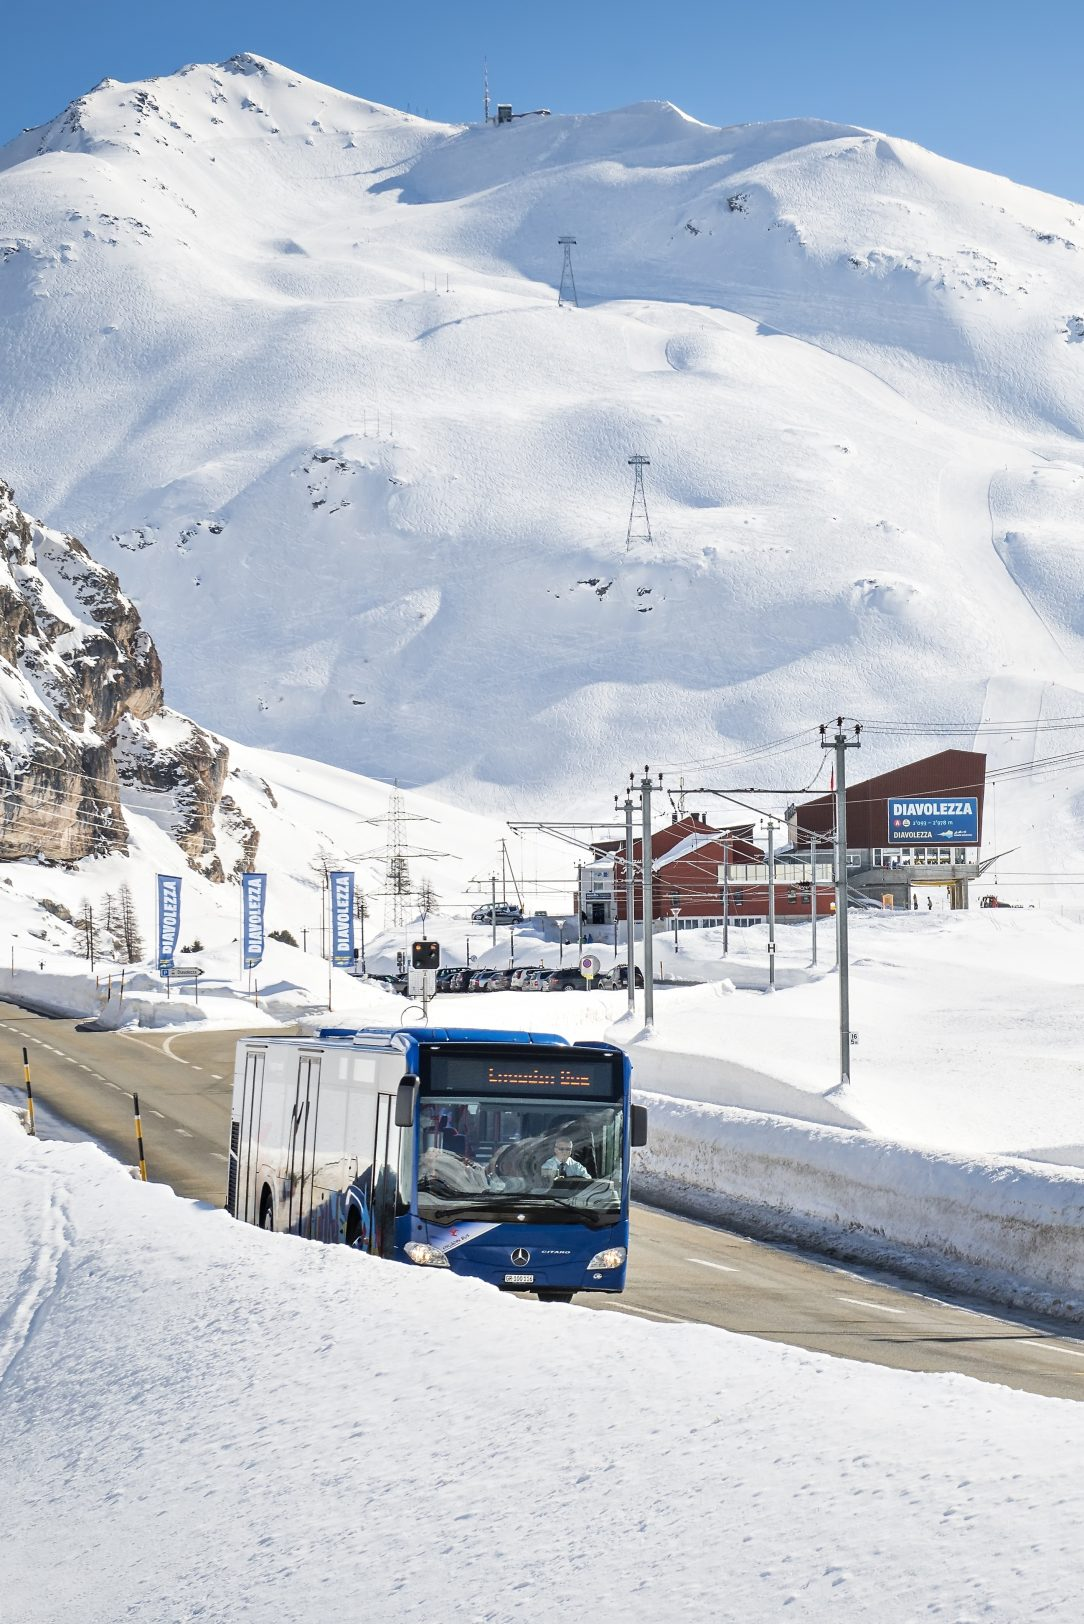 engadinbus_winter-9